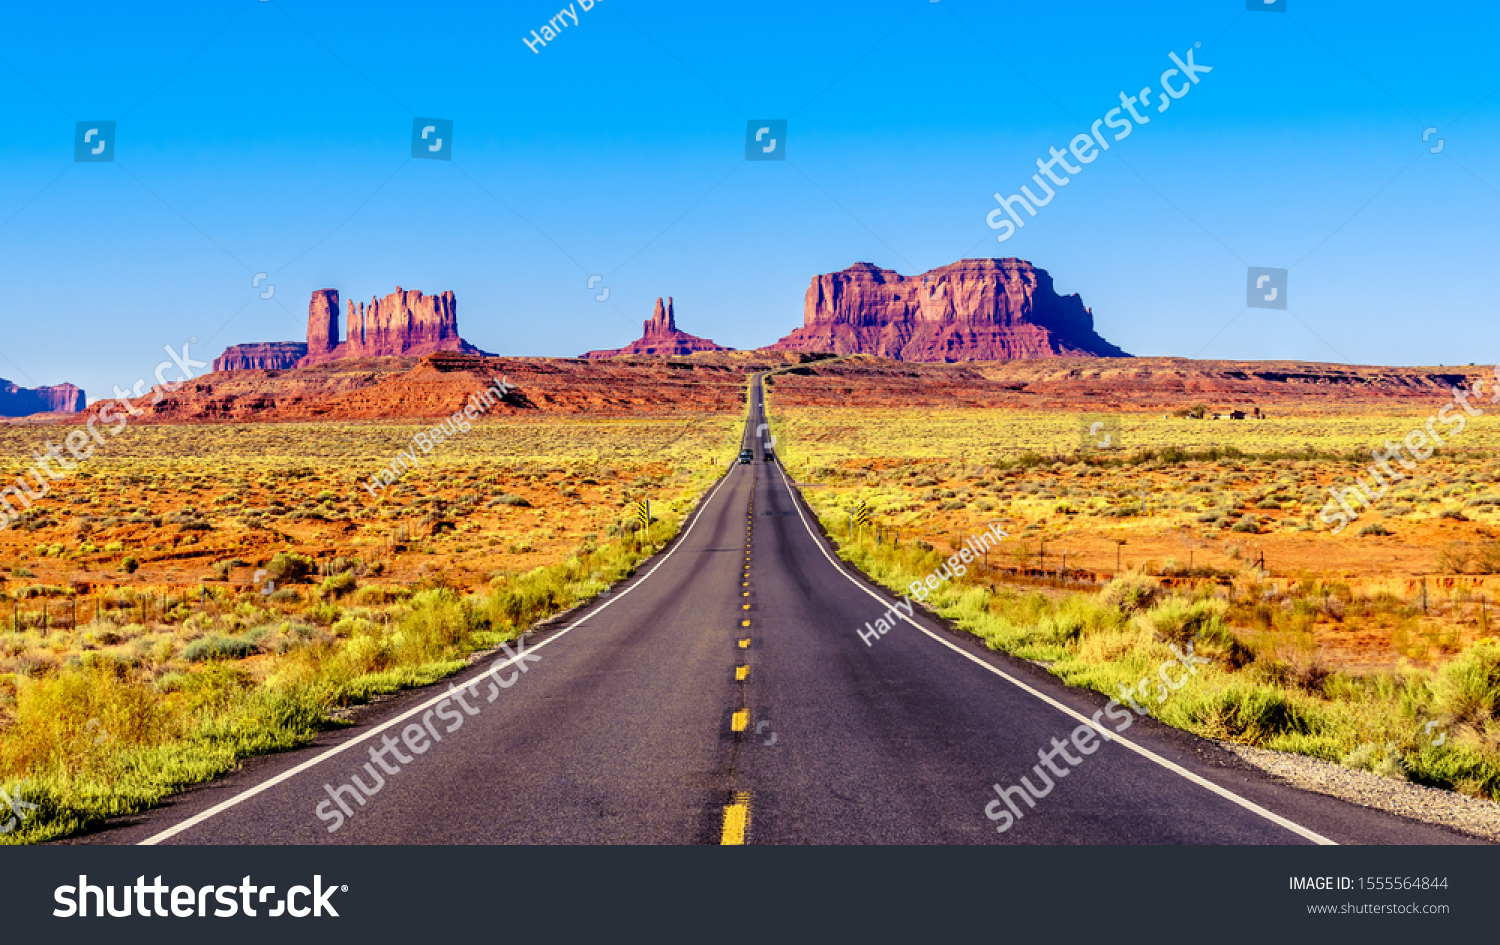 Highway 163 leading to the towering sandstone Buttes and Mesas of the Monument Valley Navajo Tribal Park in Utah-Arizona, United States. 'Forest Gump Point' where he stopped his cross country run #1555564844